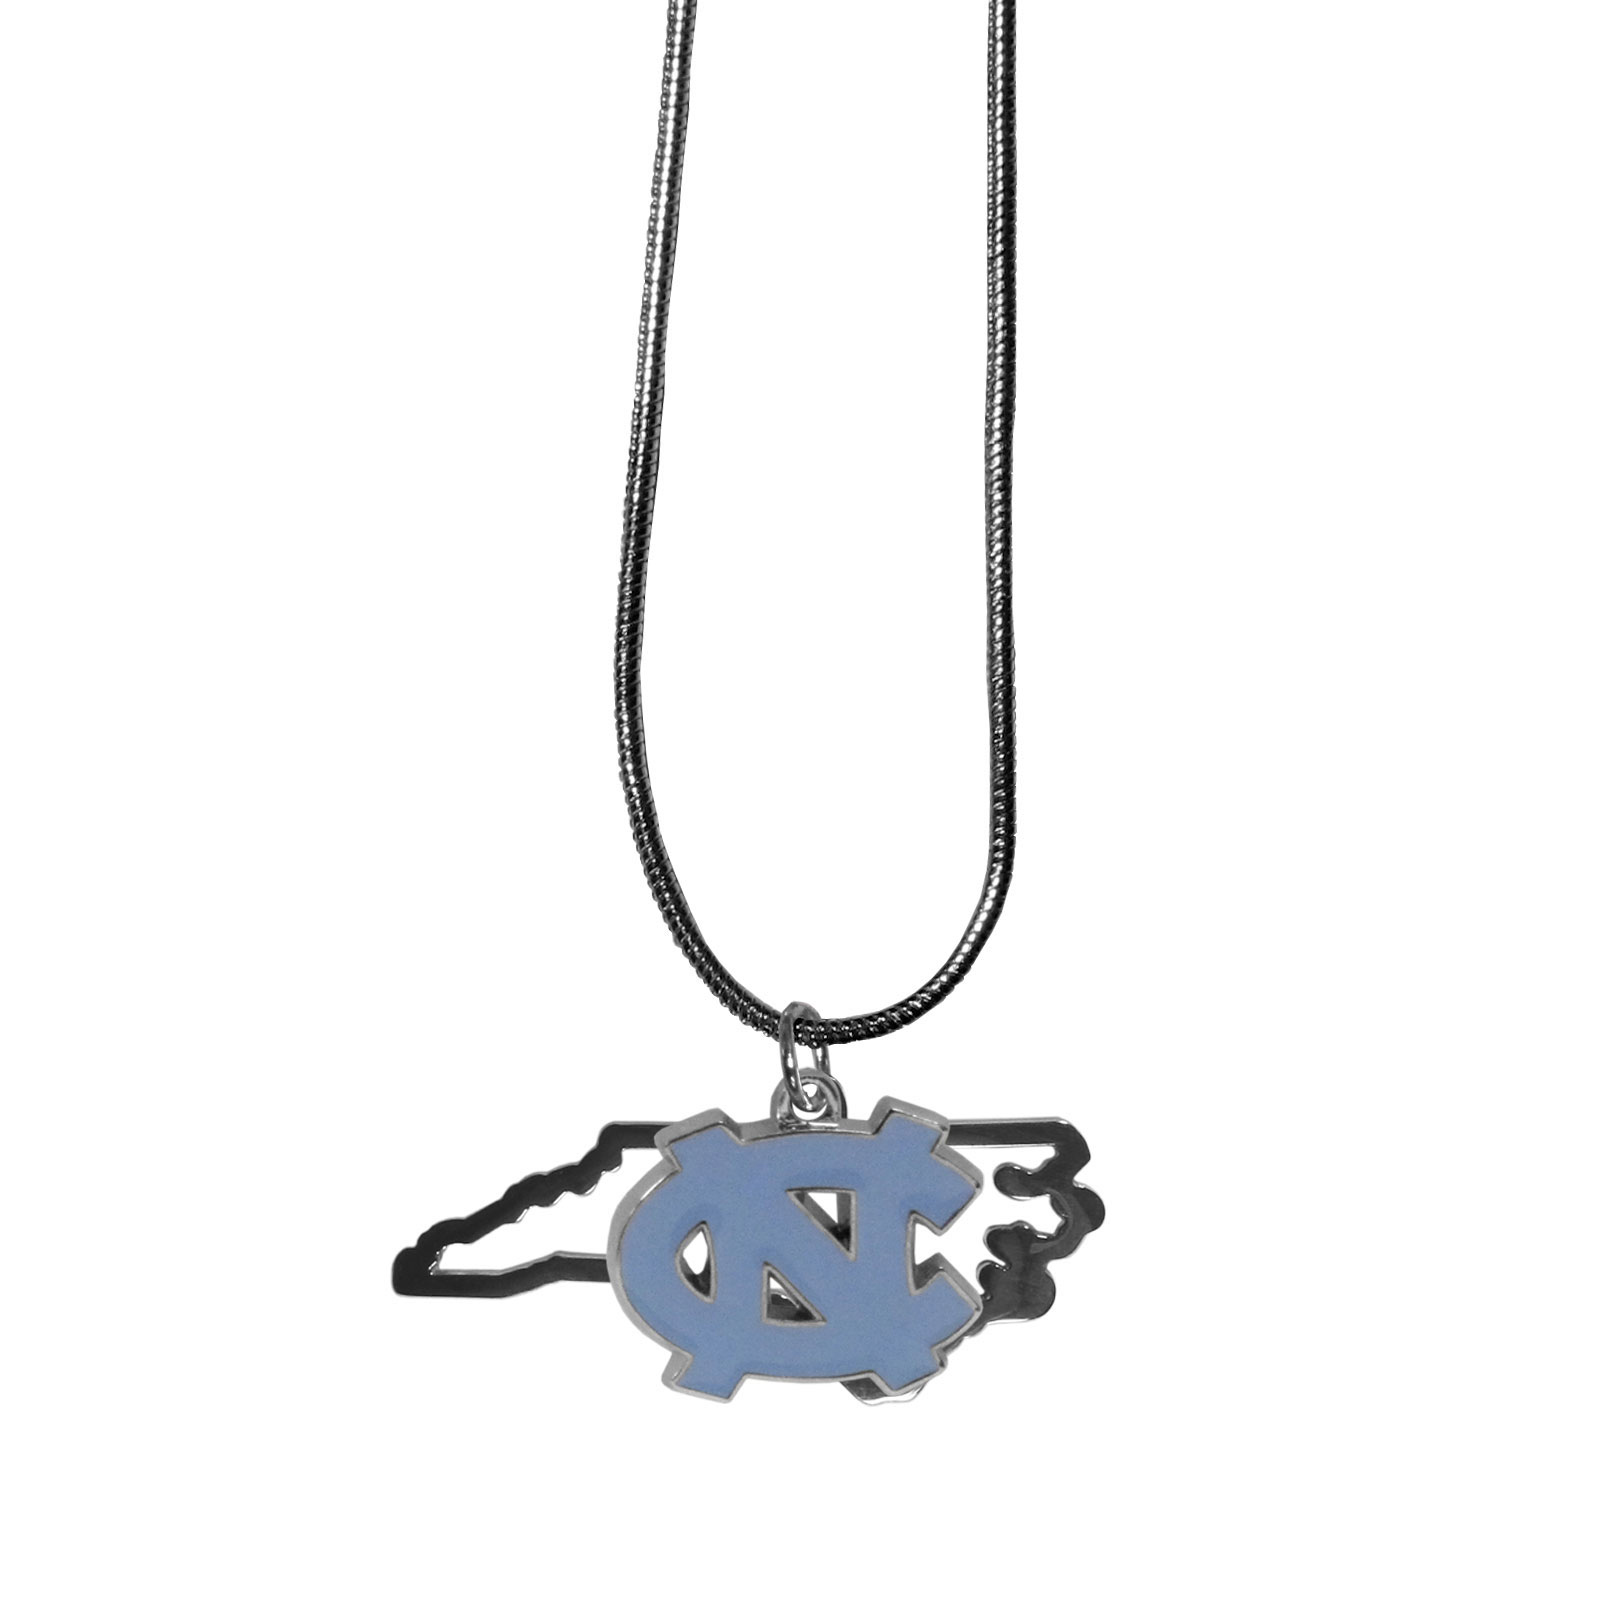 N. Carolina Tar Heels State Charm Necklace - Get in on the trend! State themes are a trend that just keeps getting more popular and these necklaces take the state style and give it a sporty twist with a N. Carolina Tar Heels added to the state outline charm. The come on a snake chain that is 22 inches long.